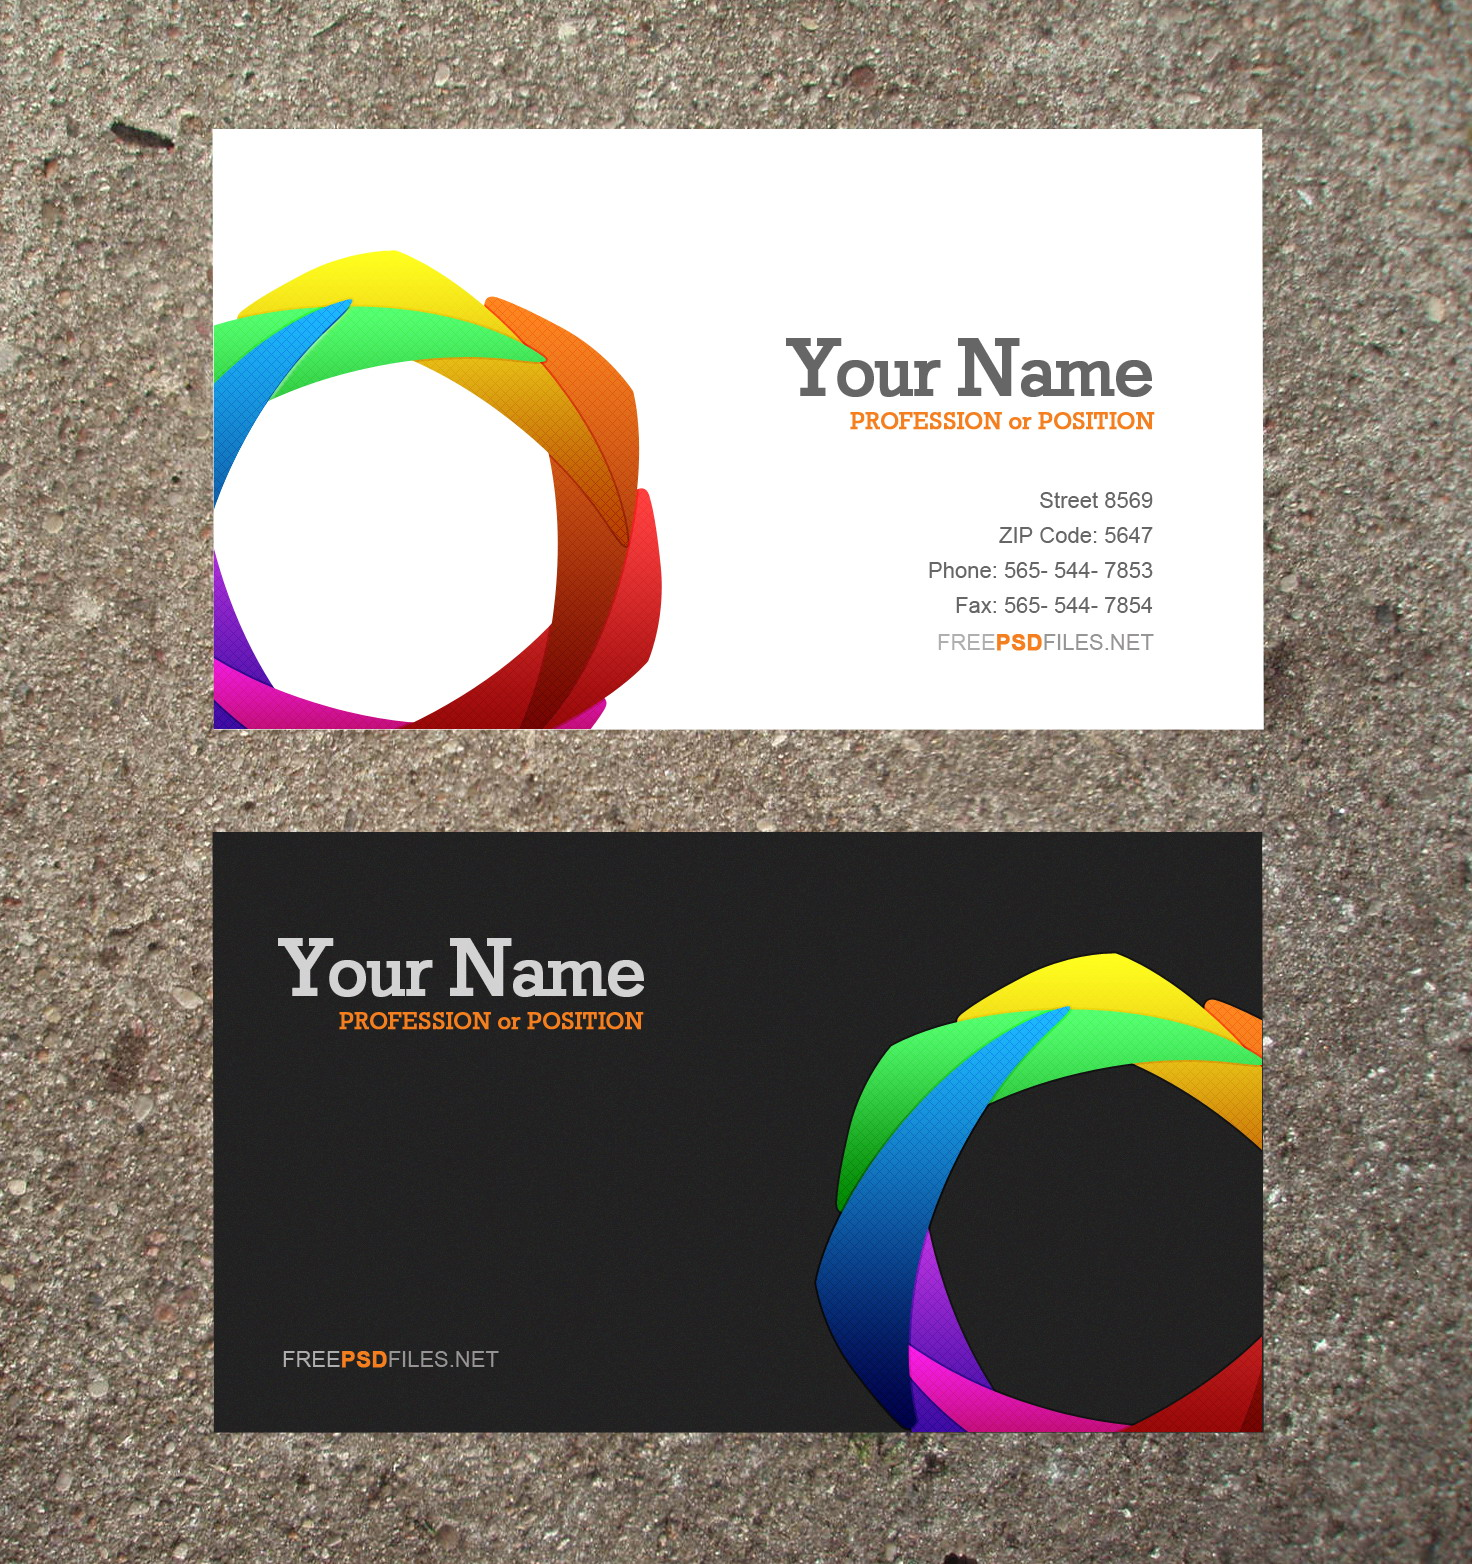 online business card templates - Tire.driveeasy.co